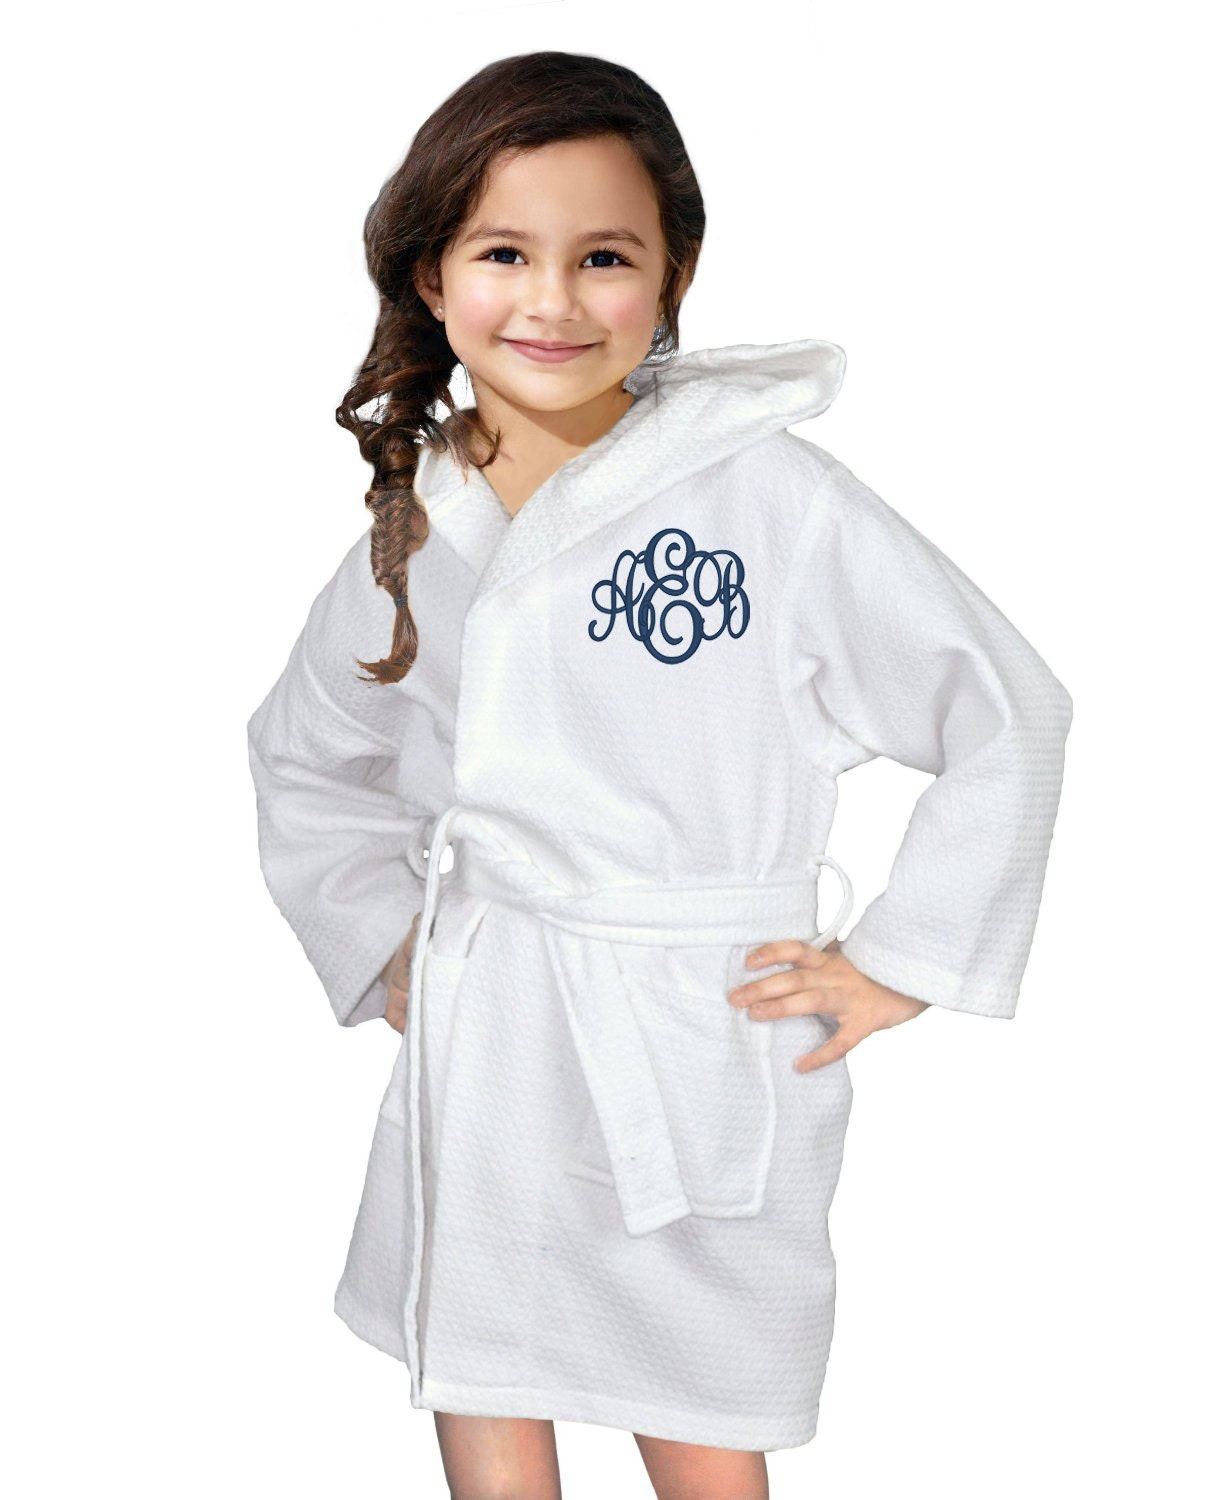 flower girl robes    flower girl gift    girls robe    spa party